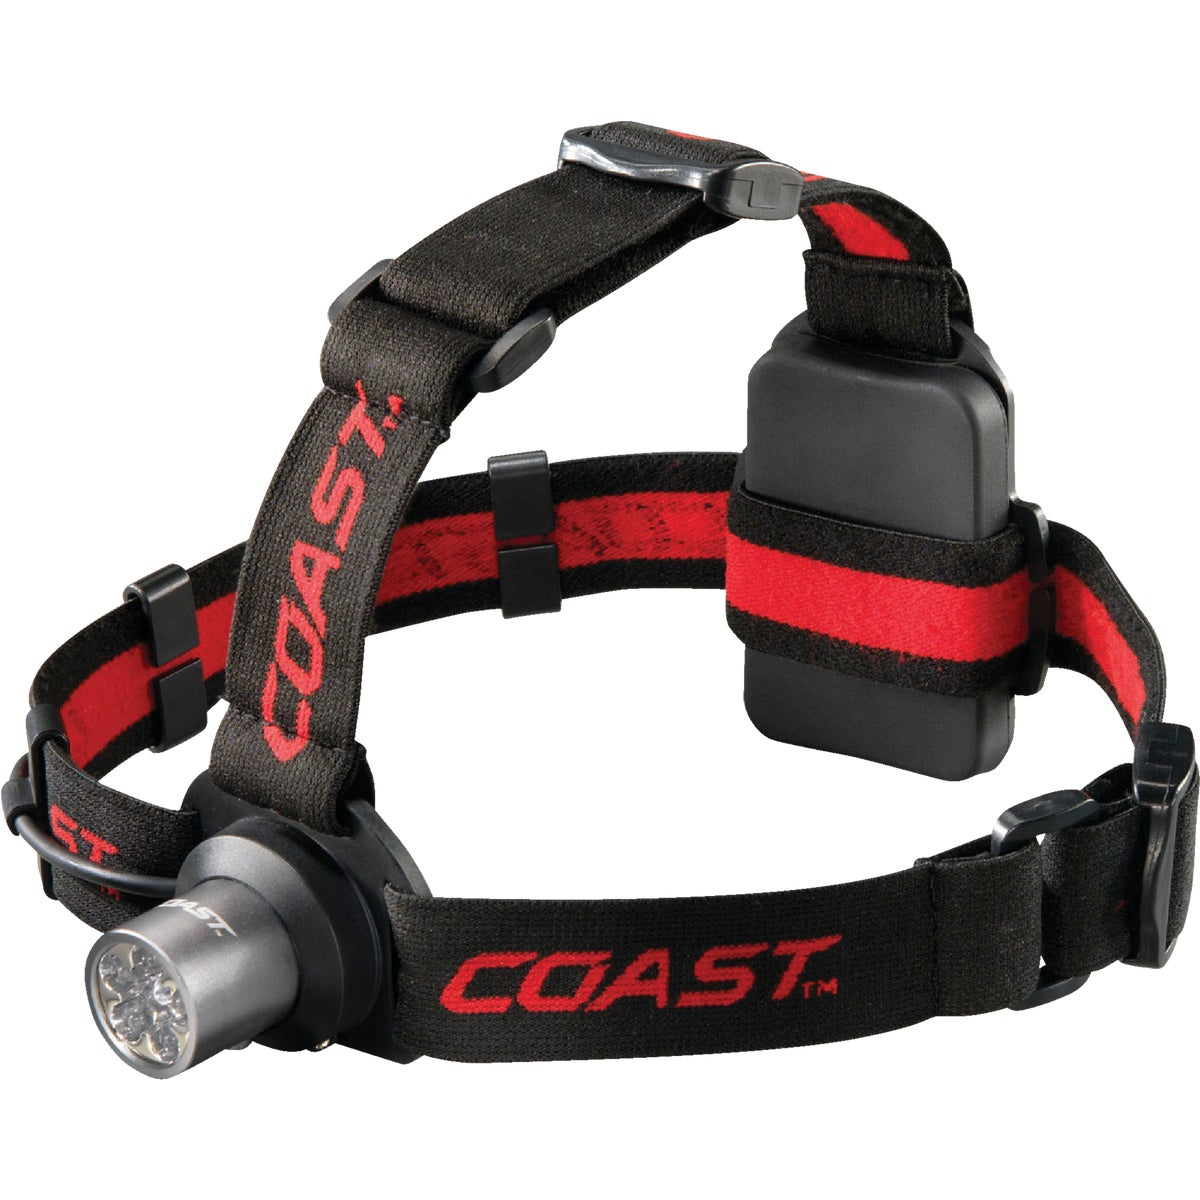 HL5 6 CHIP LED HEADLAMP - TT7041CP by Coast Products